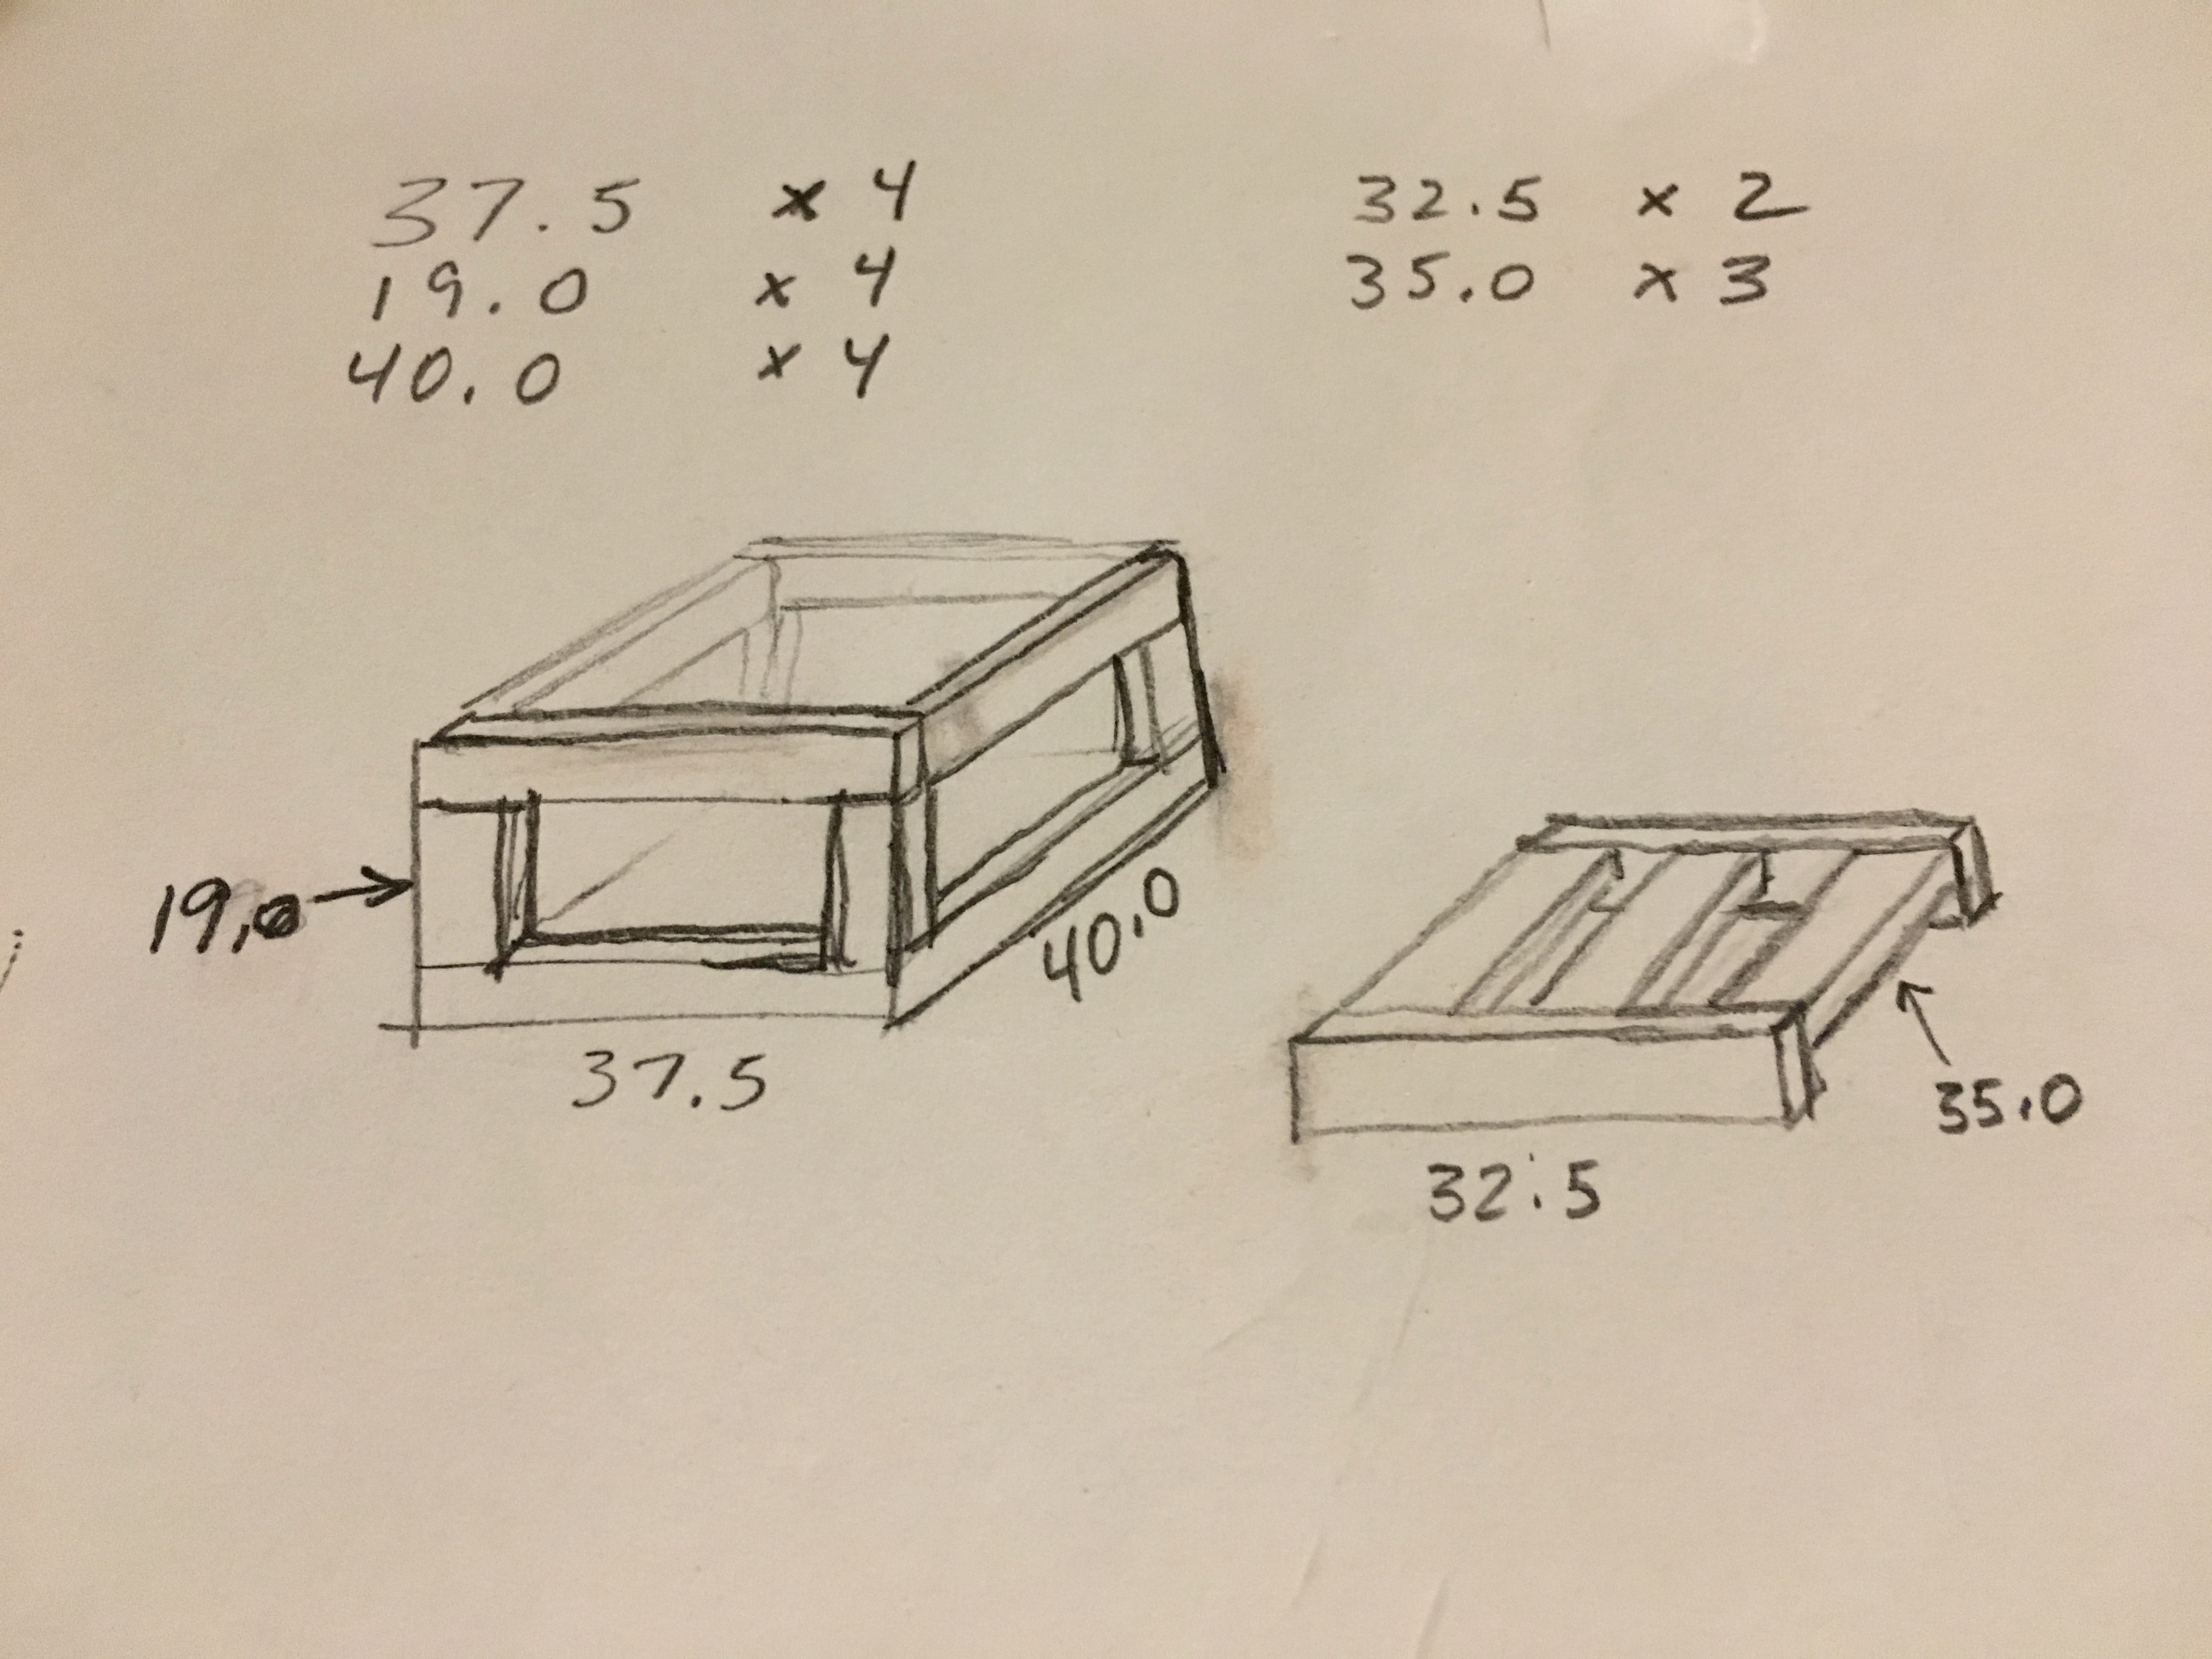 Picture of The Plan and Cutting the Wood